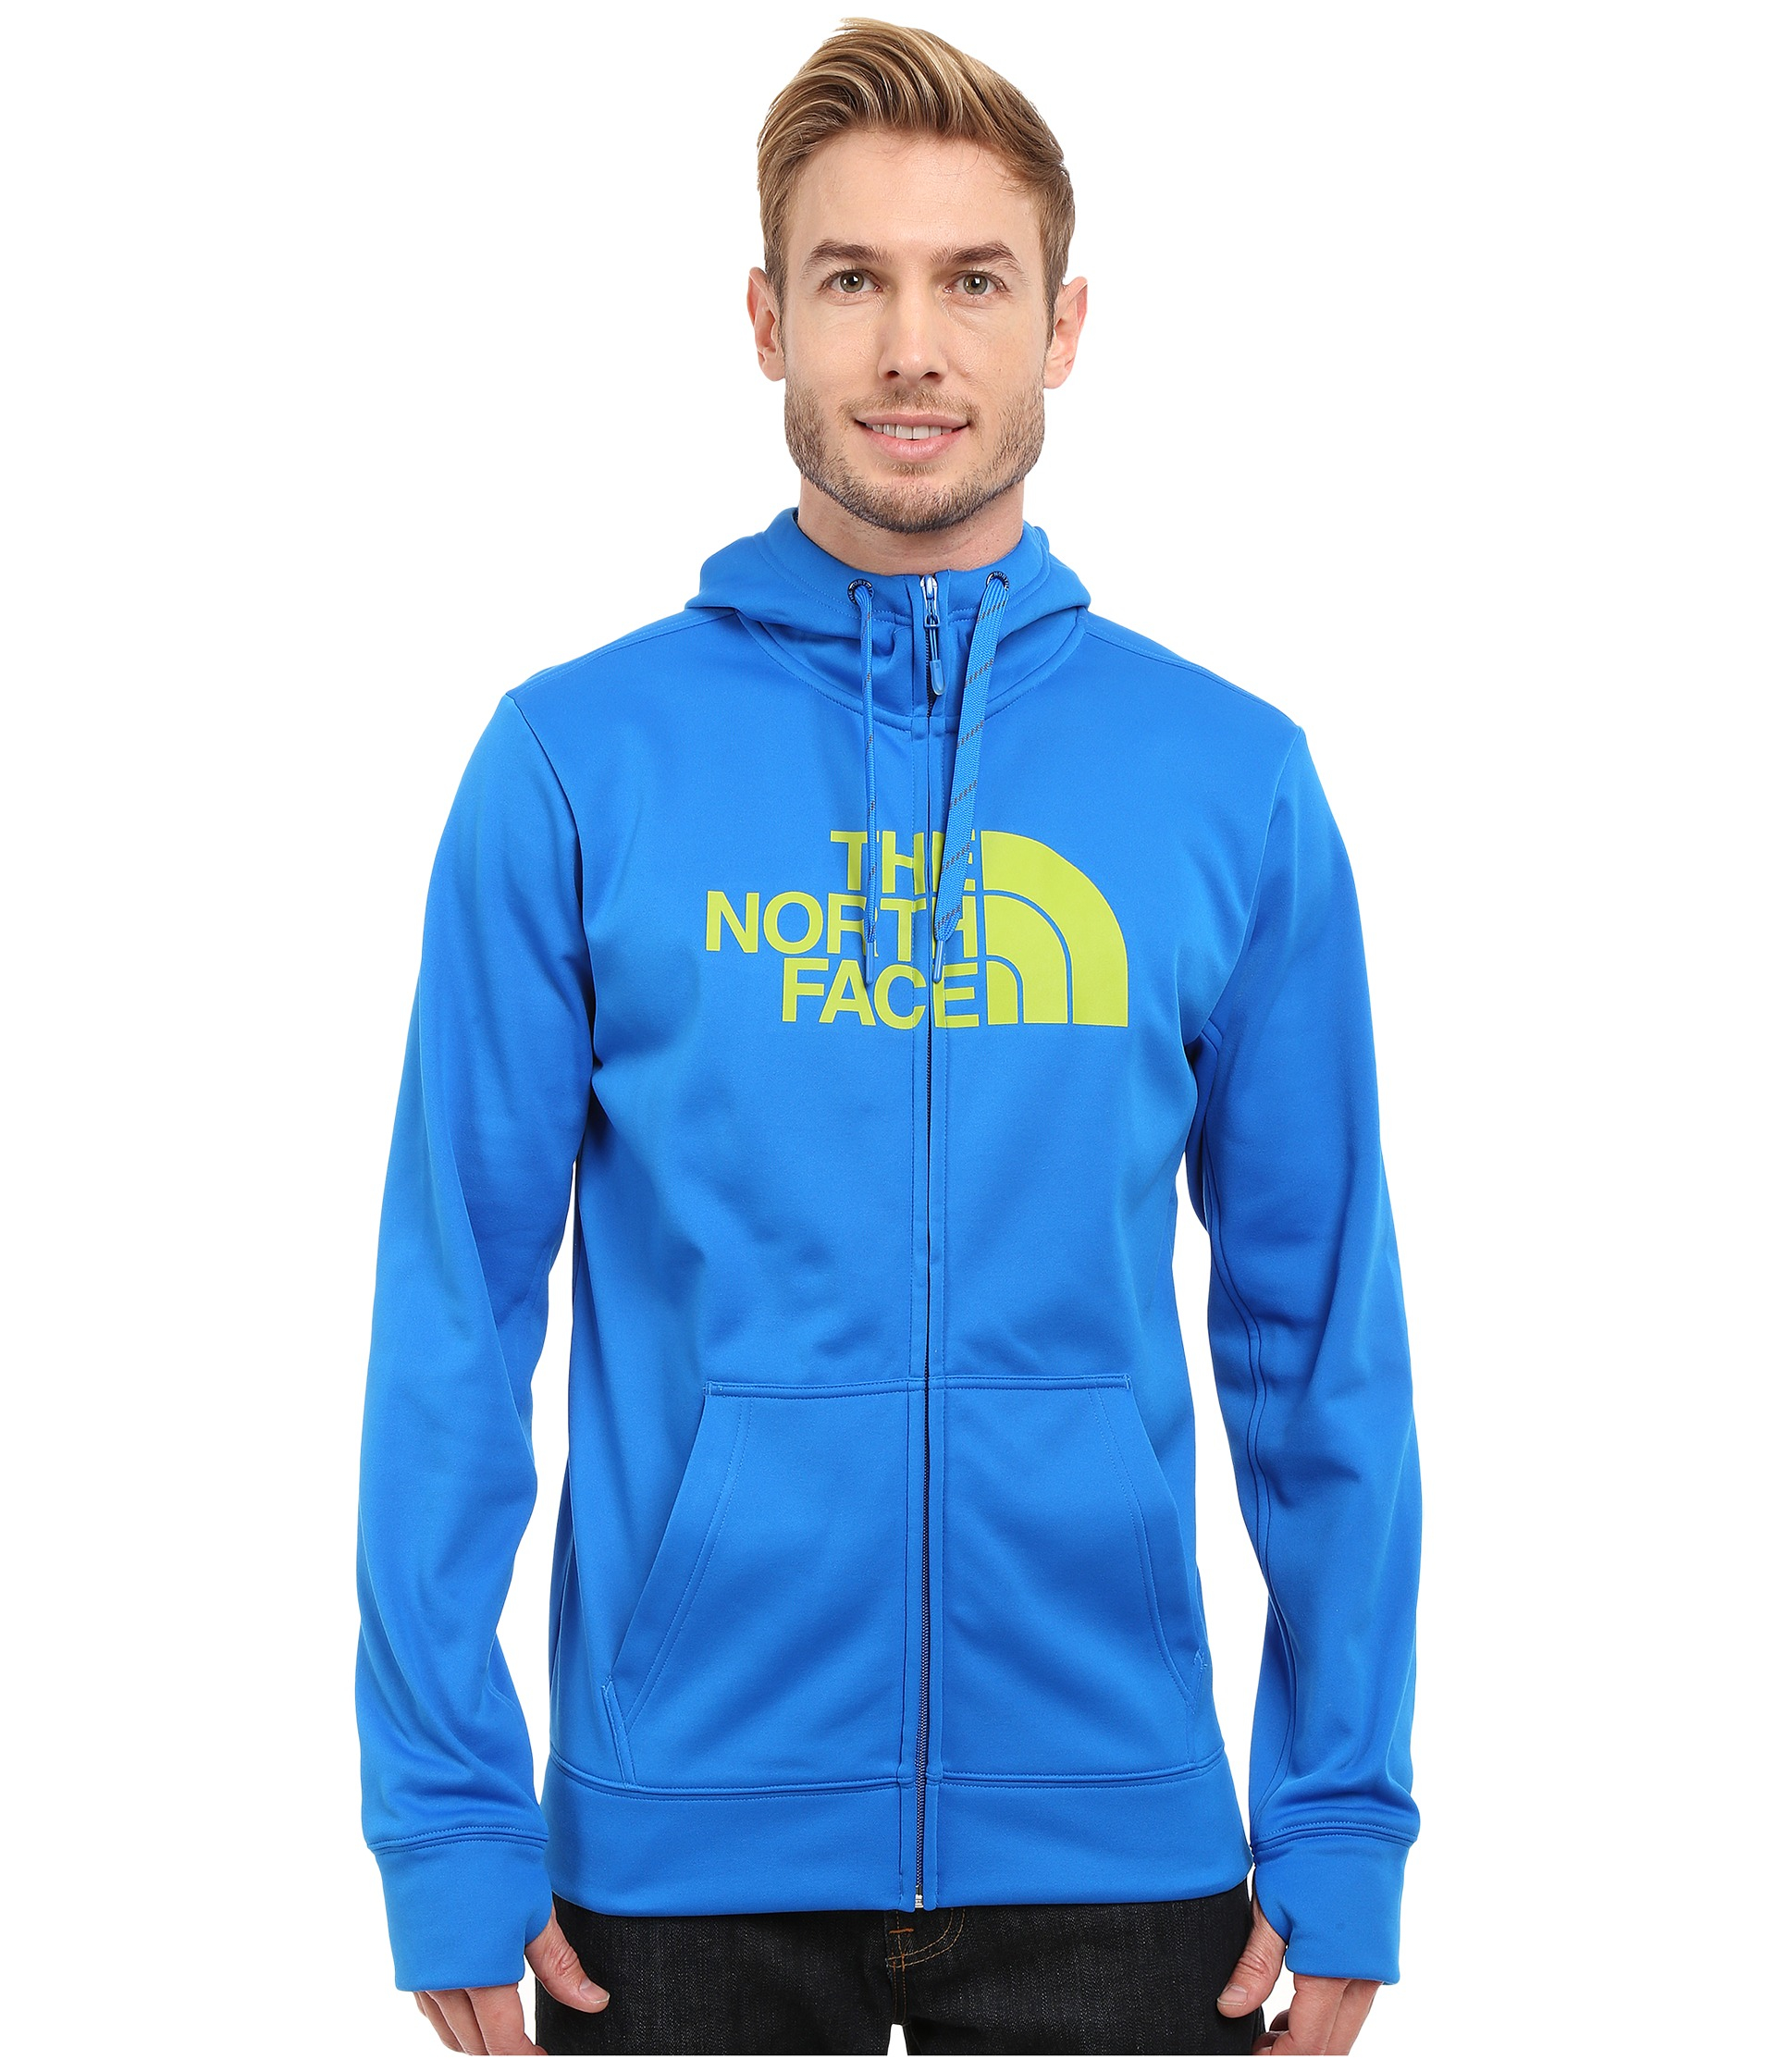 8609bd6cb discount code for the north face mens half dome full zip hoodie ...